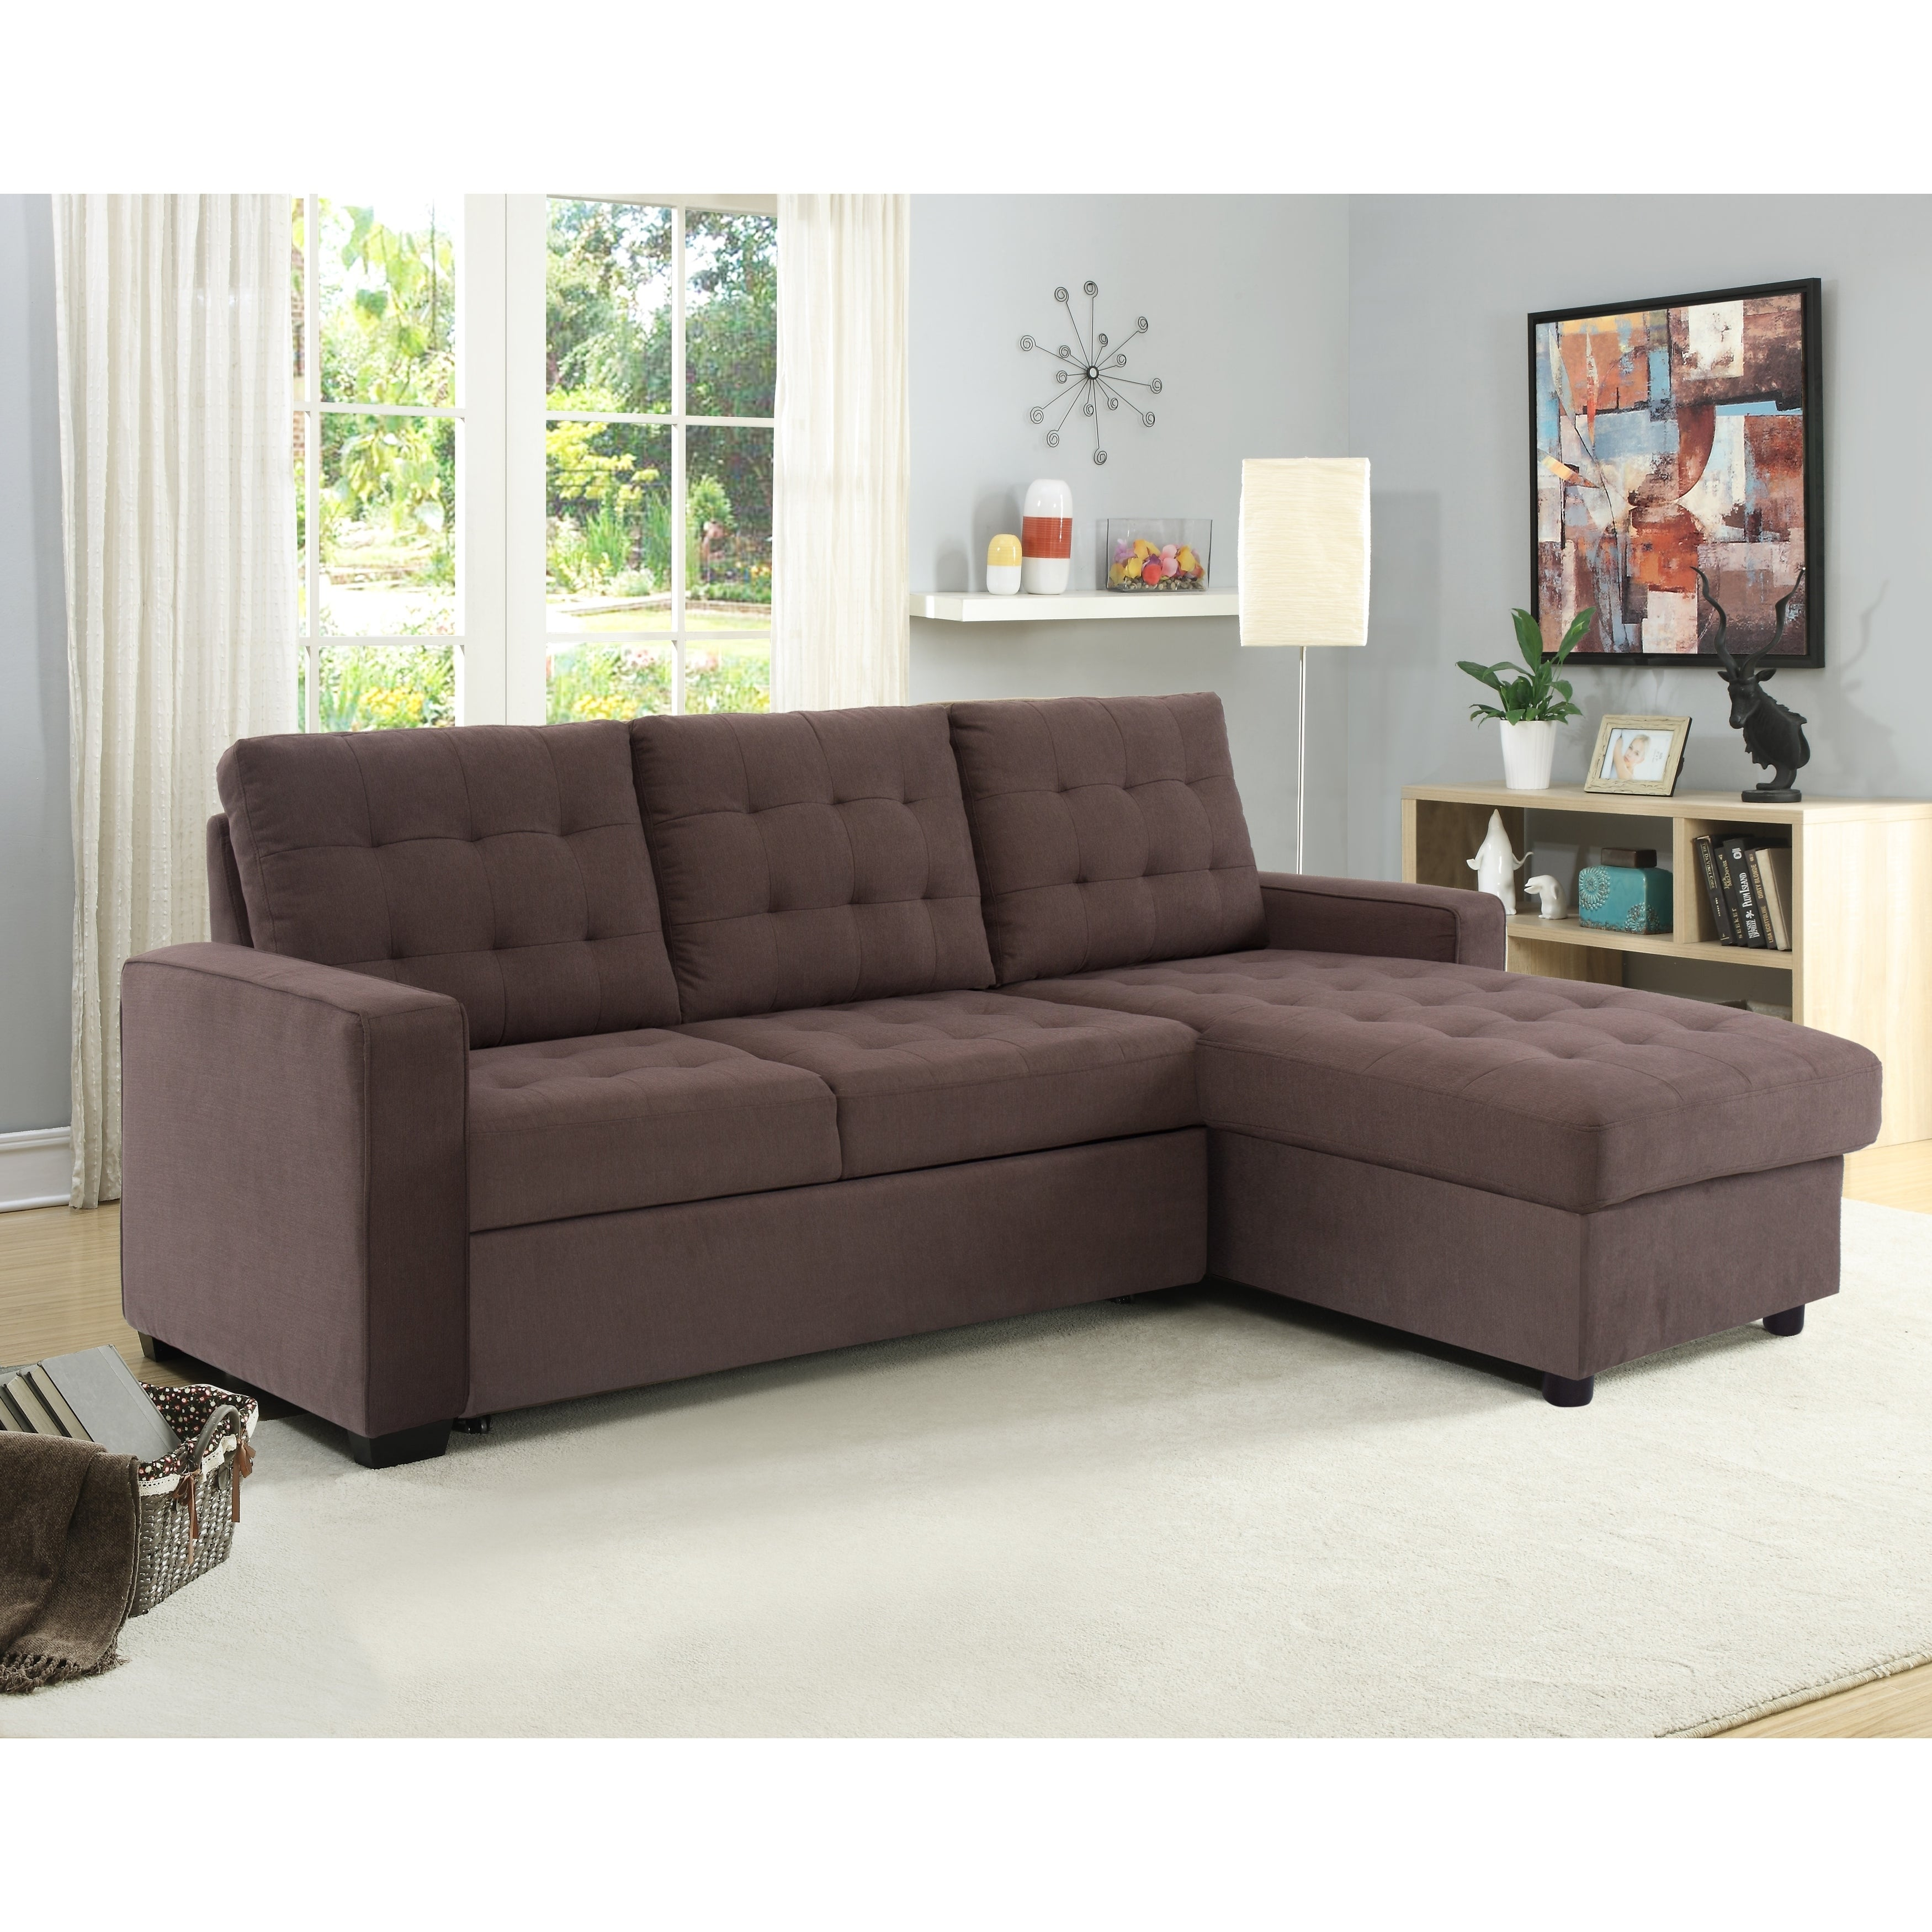 Strange Serta Bradley Convertible Sofa And Chaise Gmtry Best Dining Table And Chair Ideas Images Gmtryco